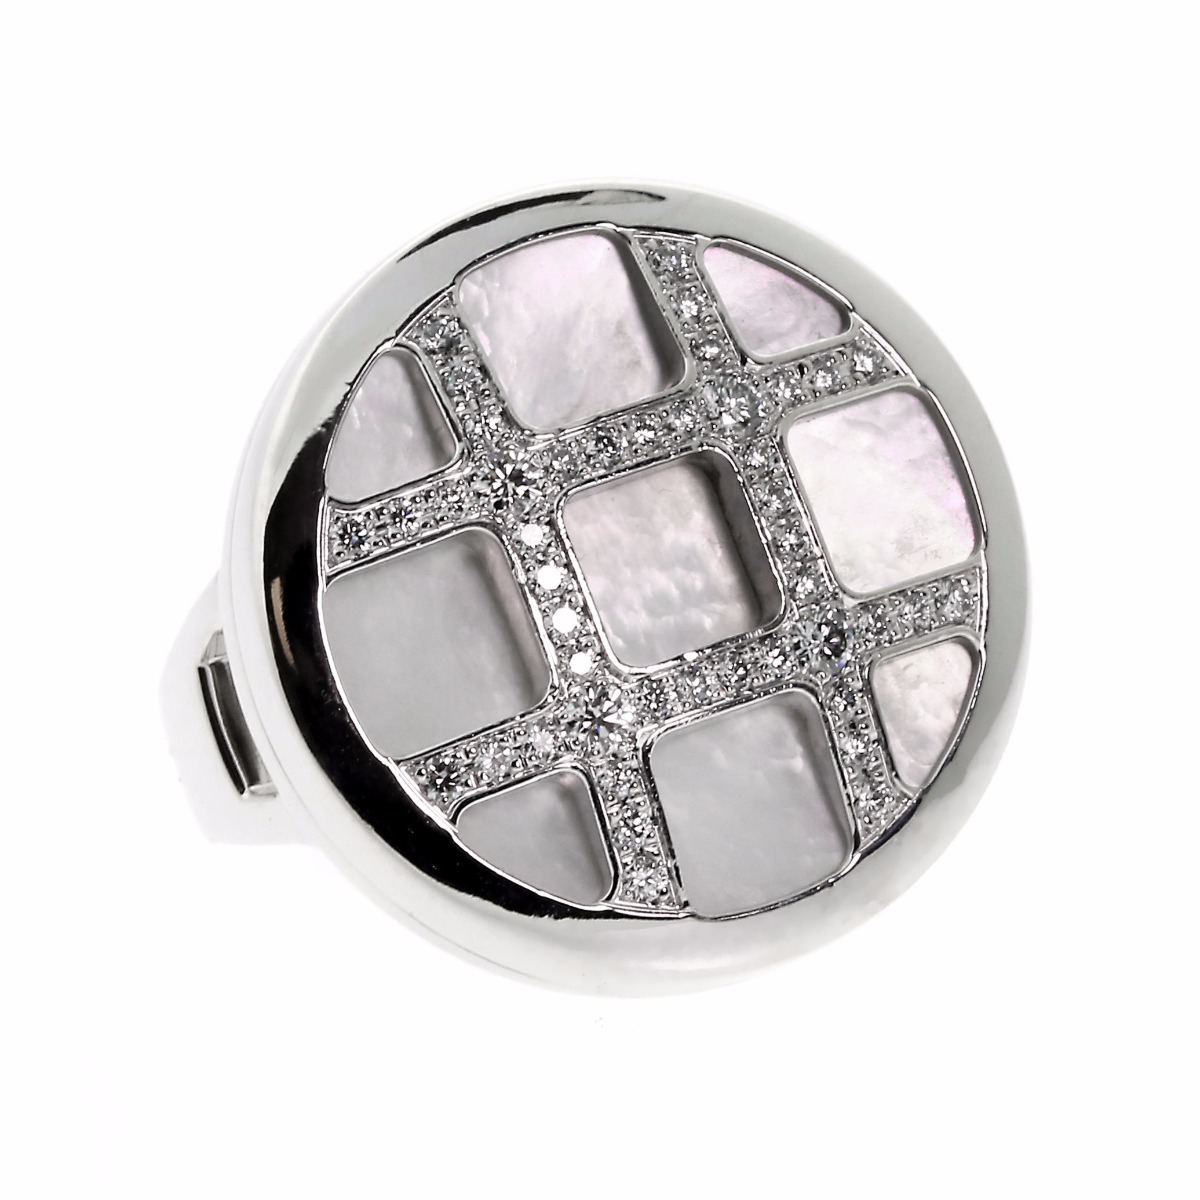 Cartier Pasha Diamond White Gold Ring - Cartier Jewelry